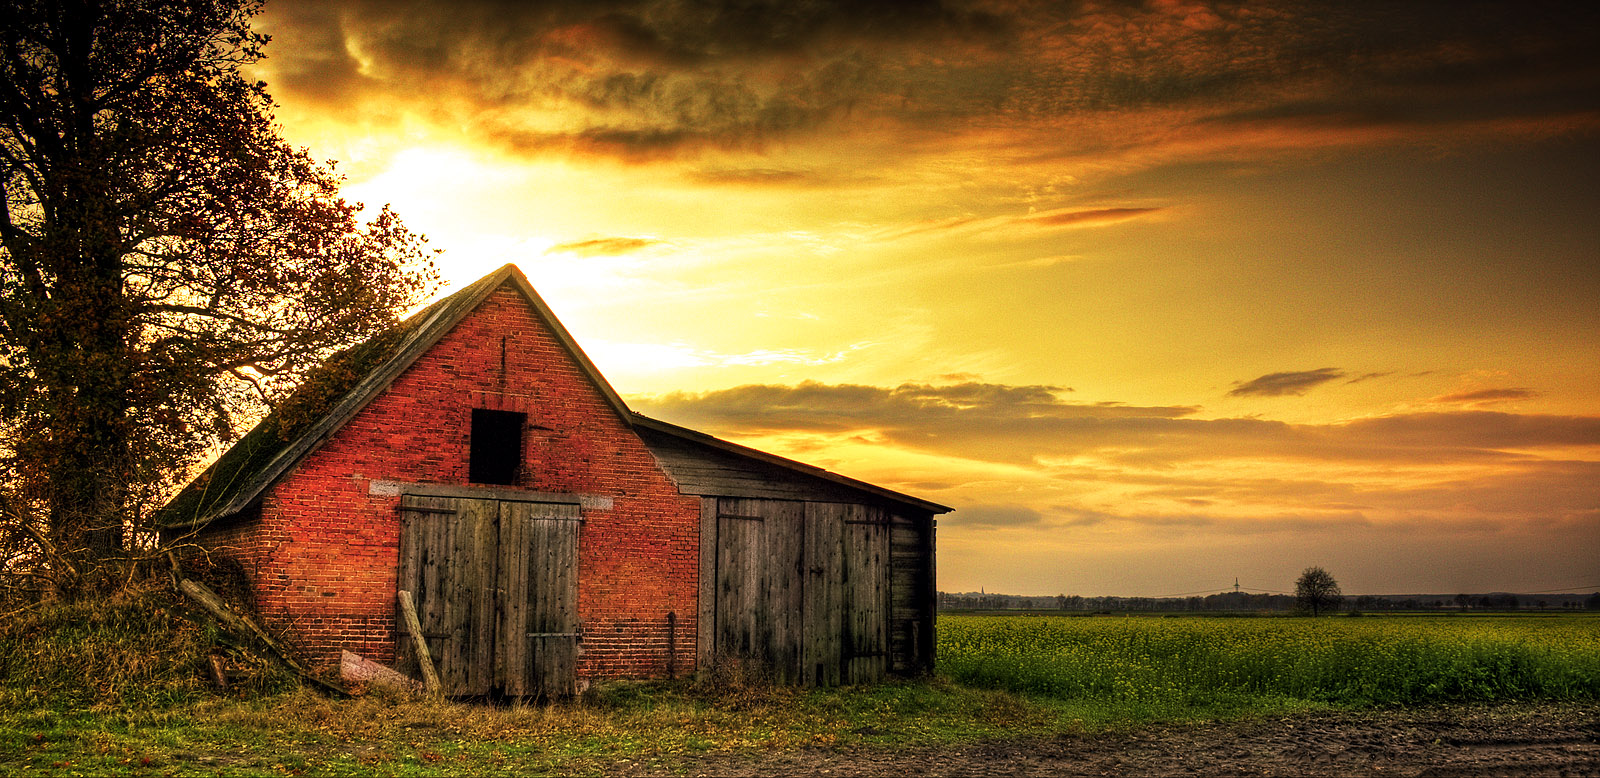 Old Barn Wallpaper Old barn 1 by nassimhasan 1600x778